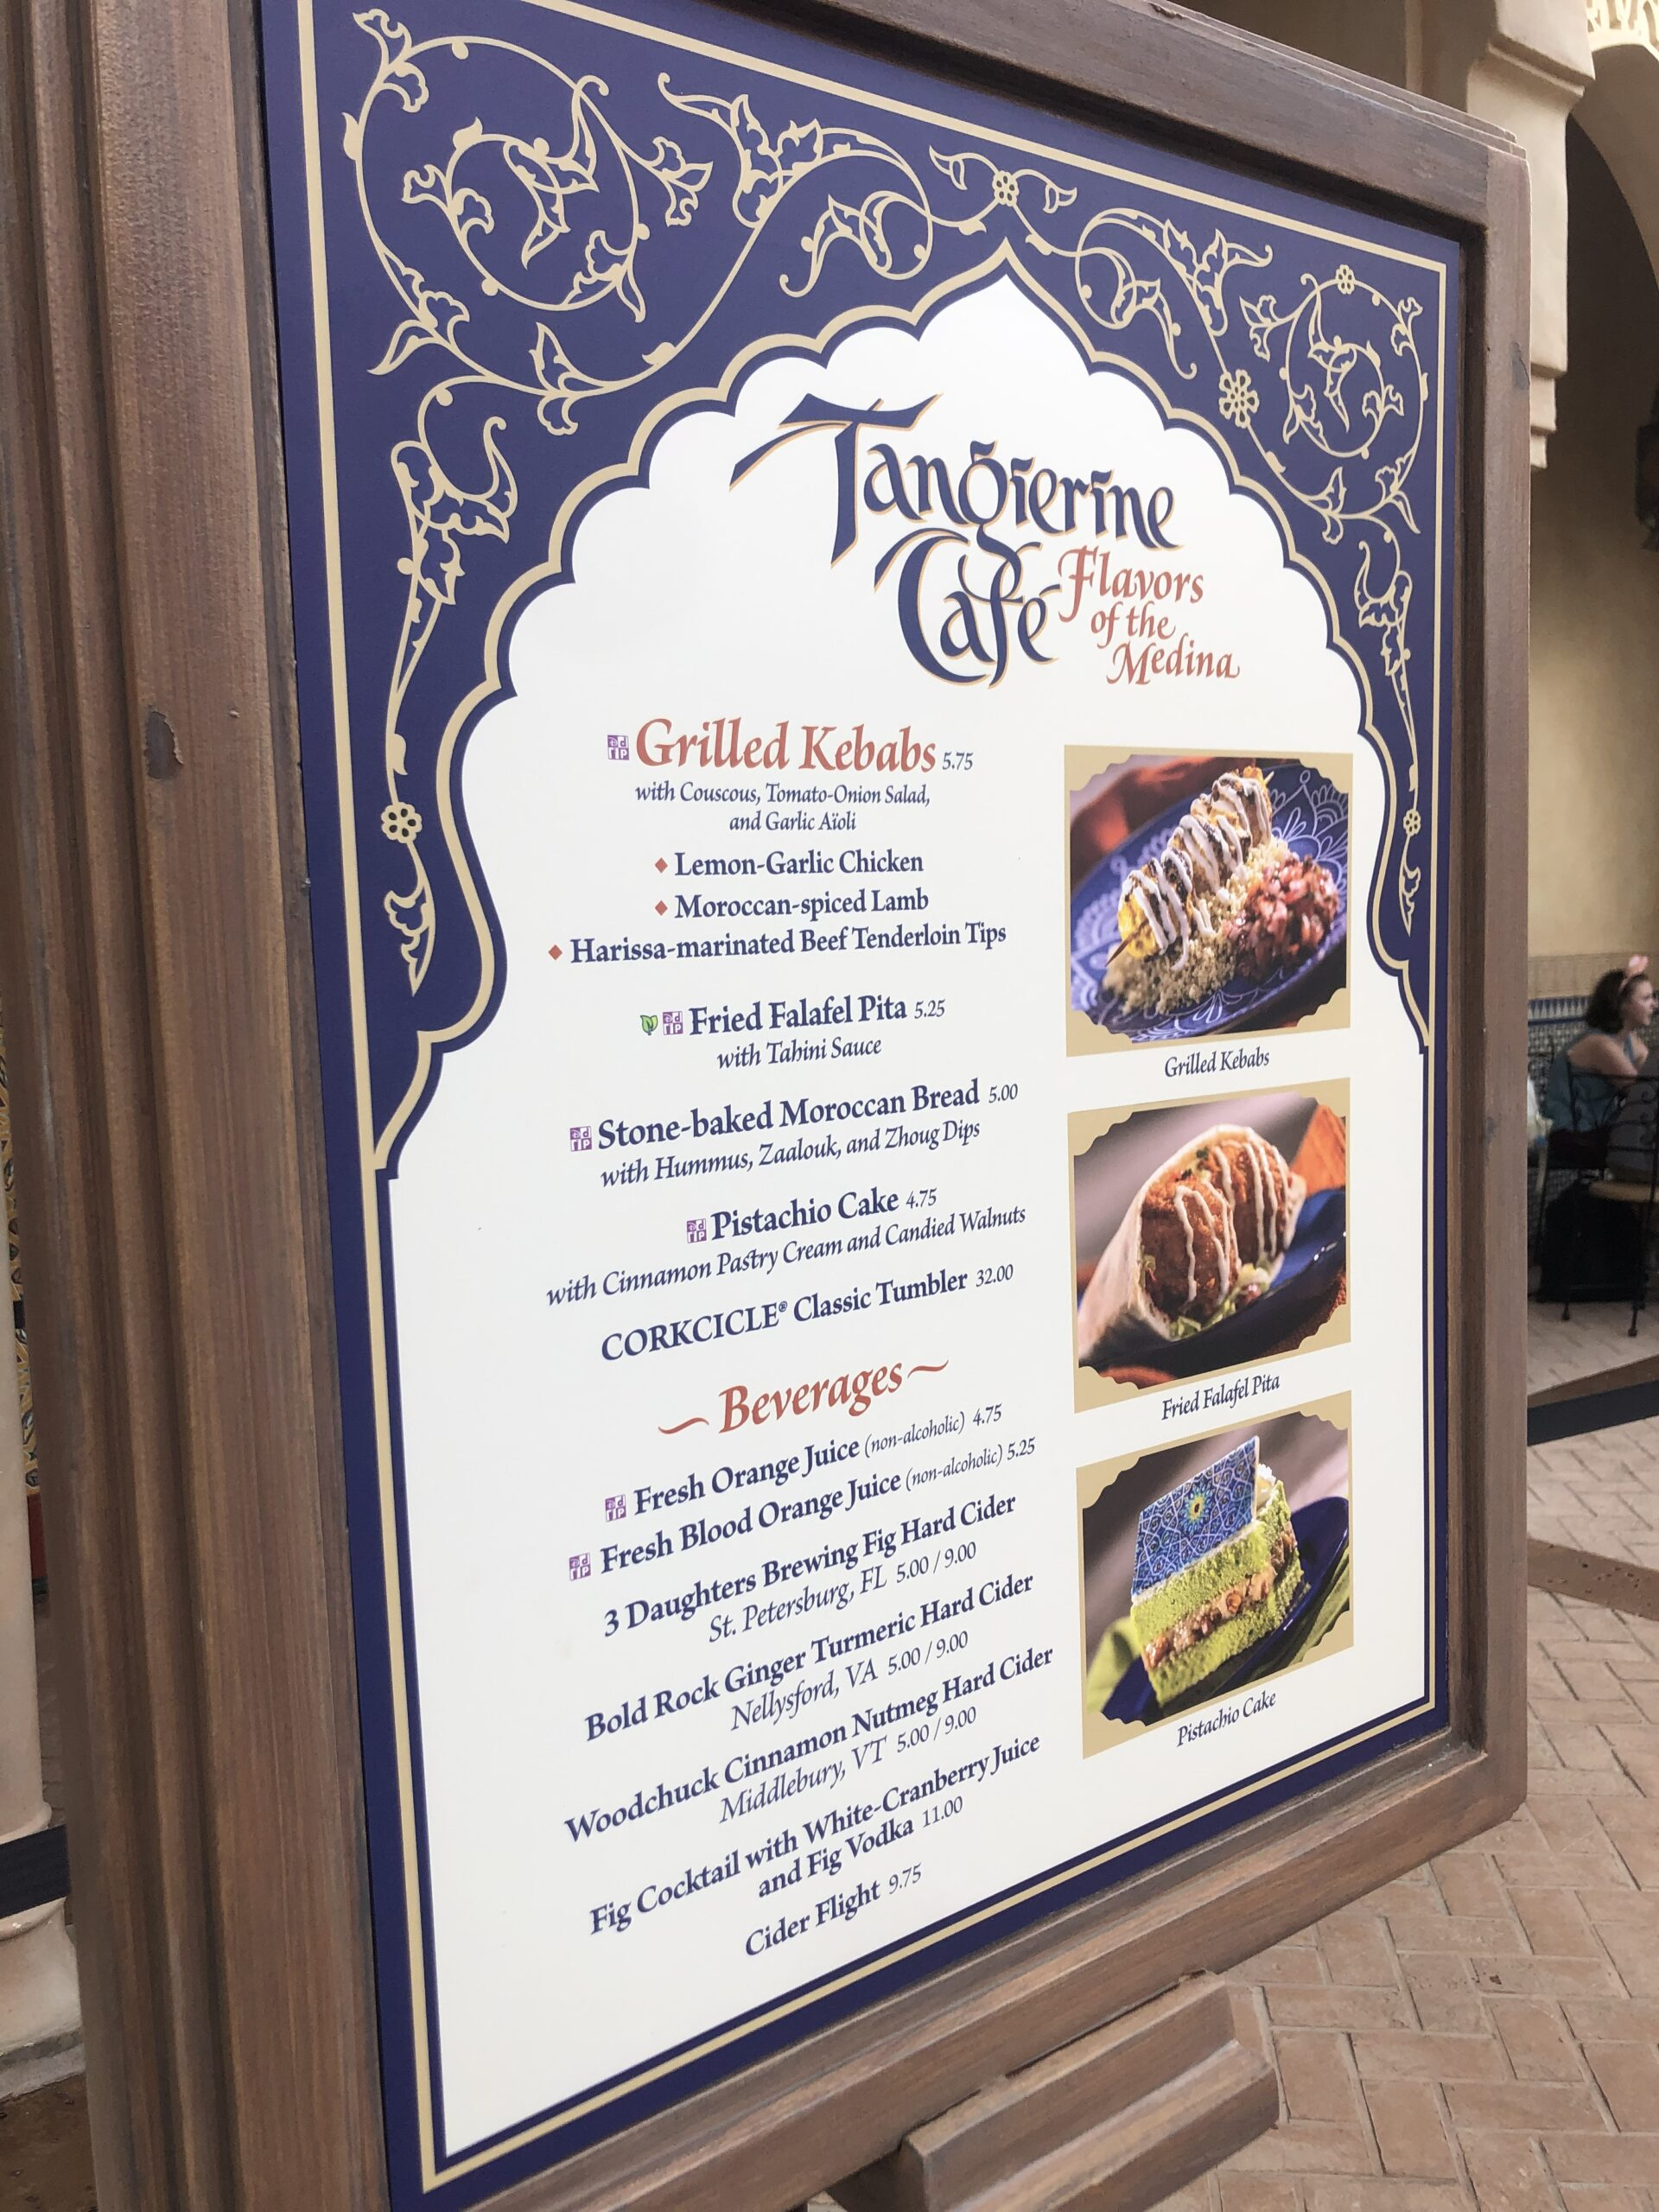 Tangierine Café: Flavors of the Medina Opens for Epcot Food & Wine Festival 5